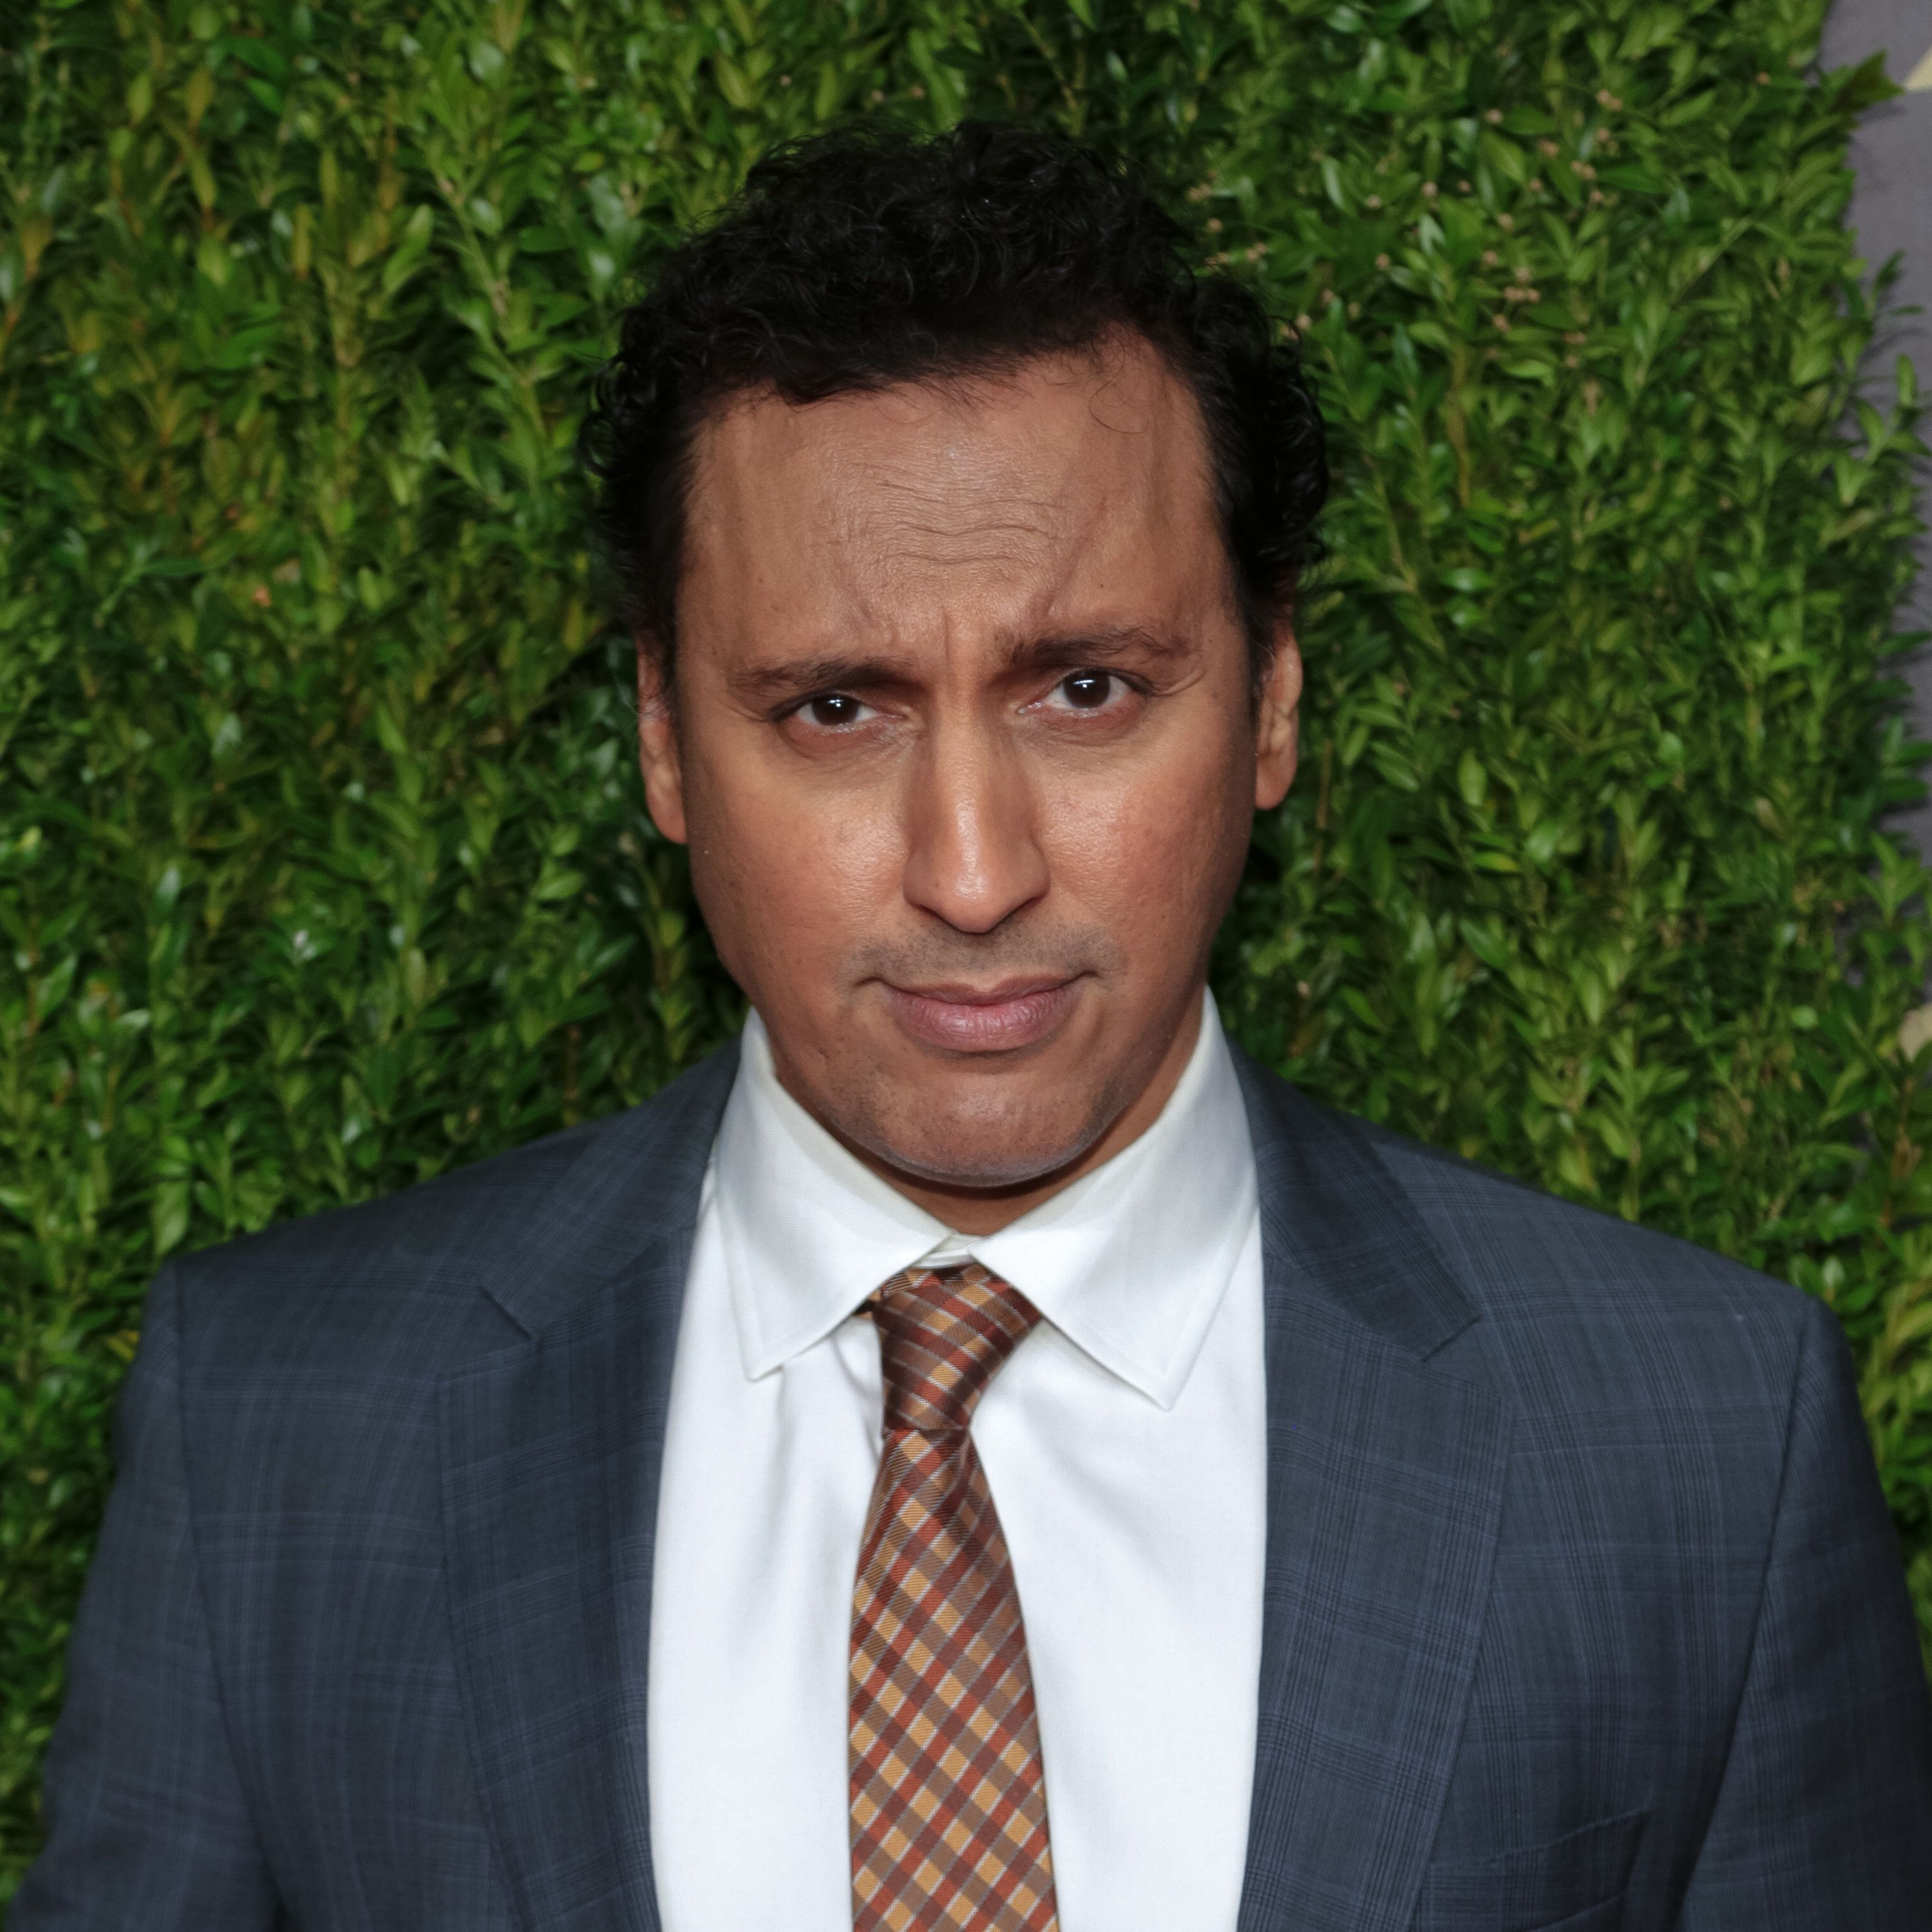 NEW YORK, NY - MAY 21: Writer/actor Aasif Mandvi attends the 75th Annual Peabody Awards Ceremony held at Cipriani Wall Street on May 21, 2016 in New York City. (Photo by Brent N. Clarke/FilmMagic)